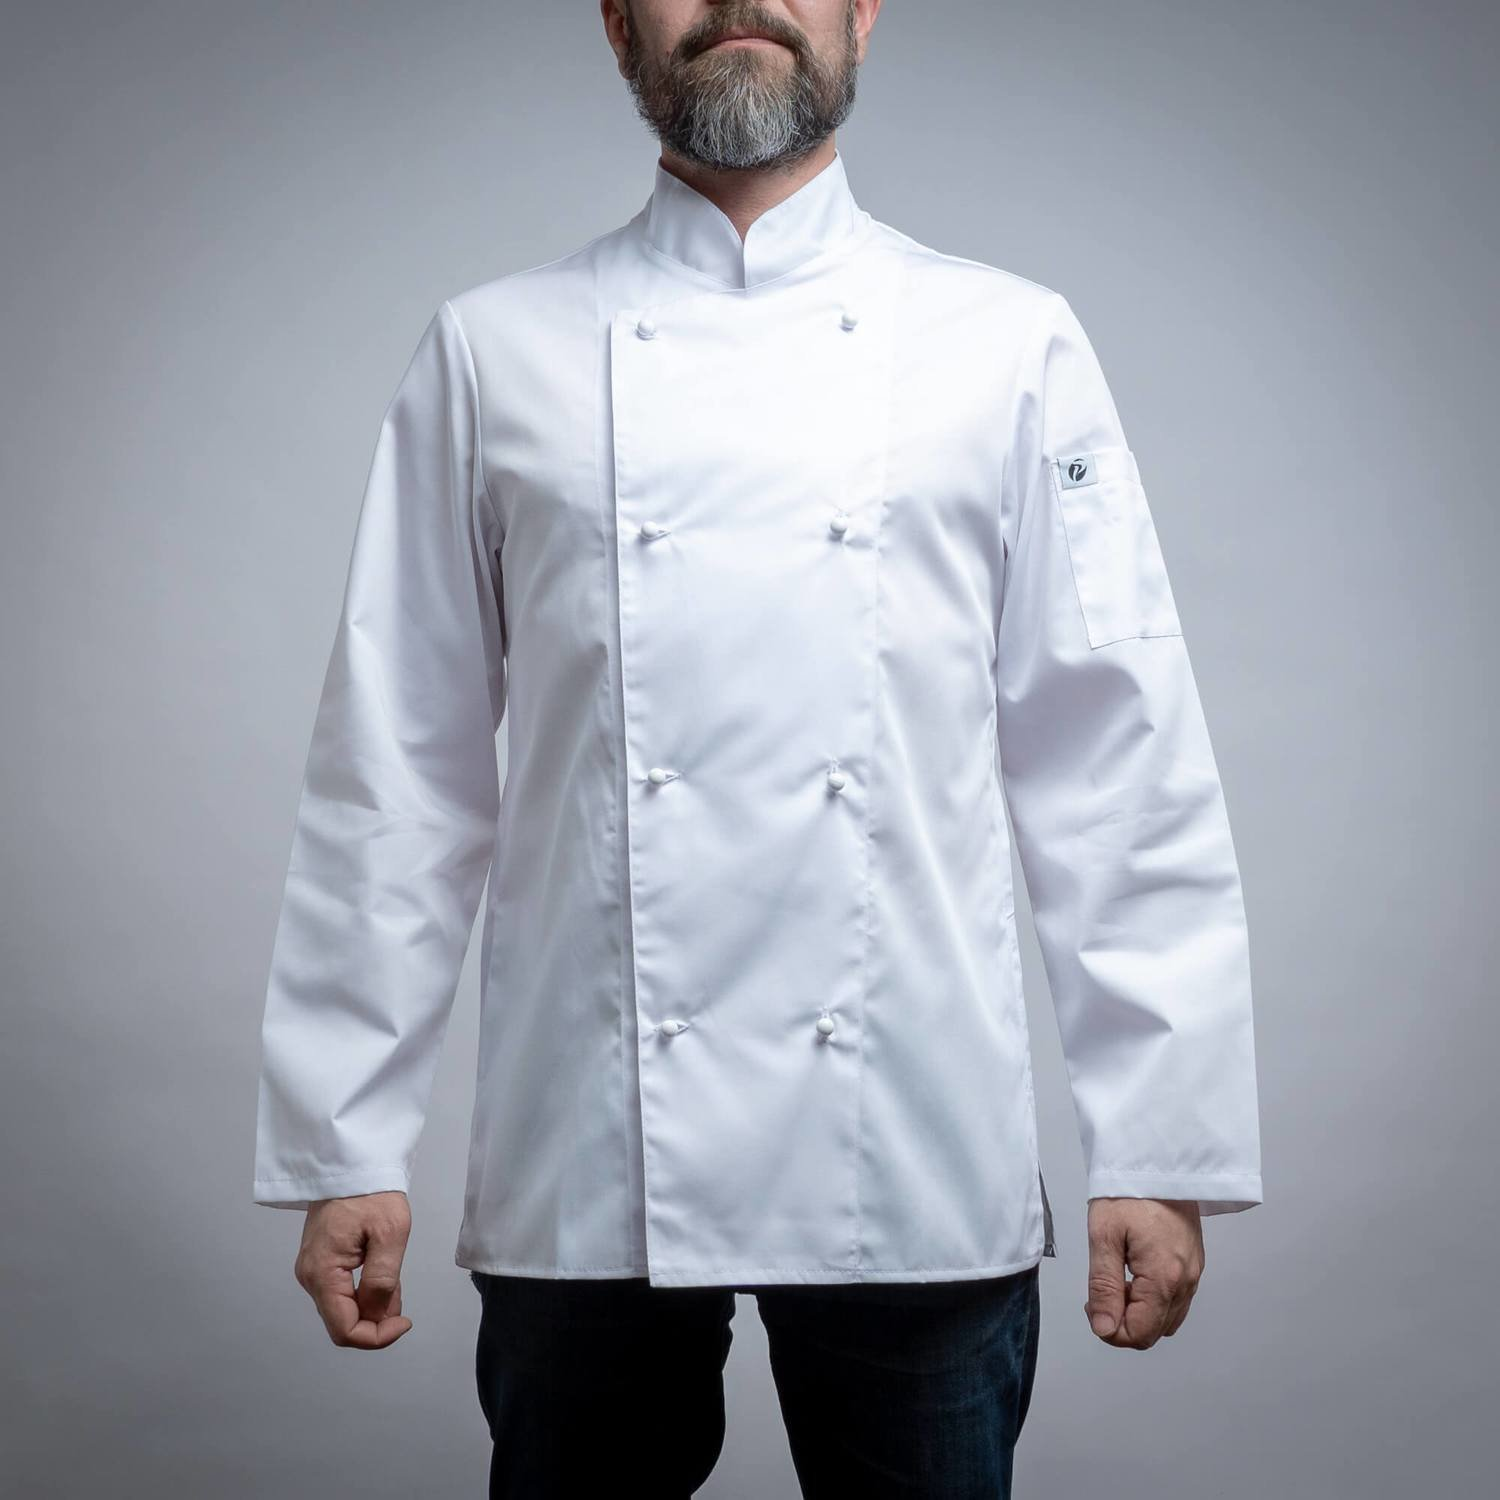 101OVERSIZE.W - MENS CHEF JACKET